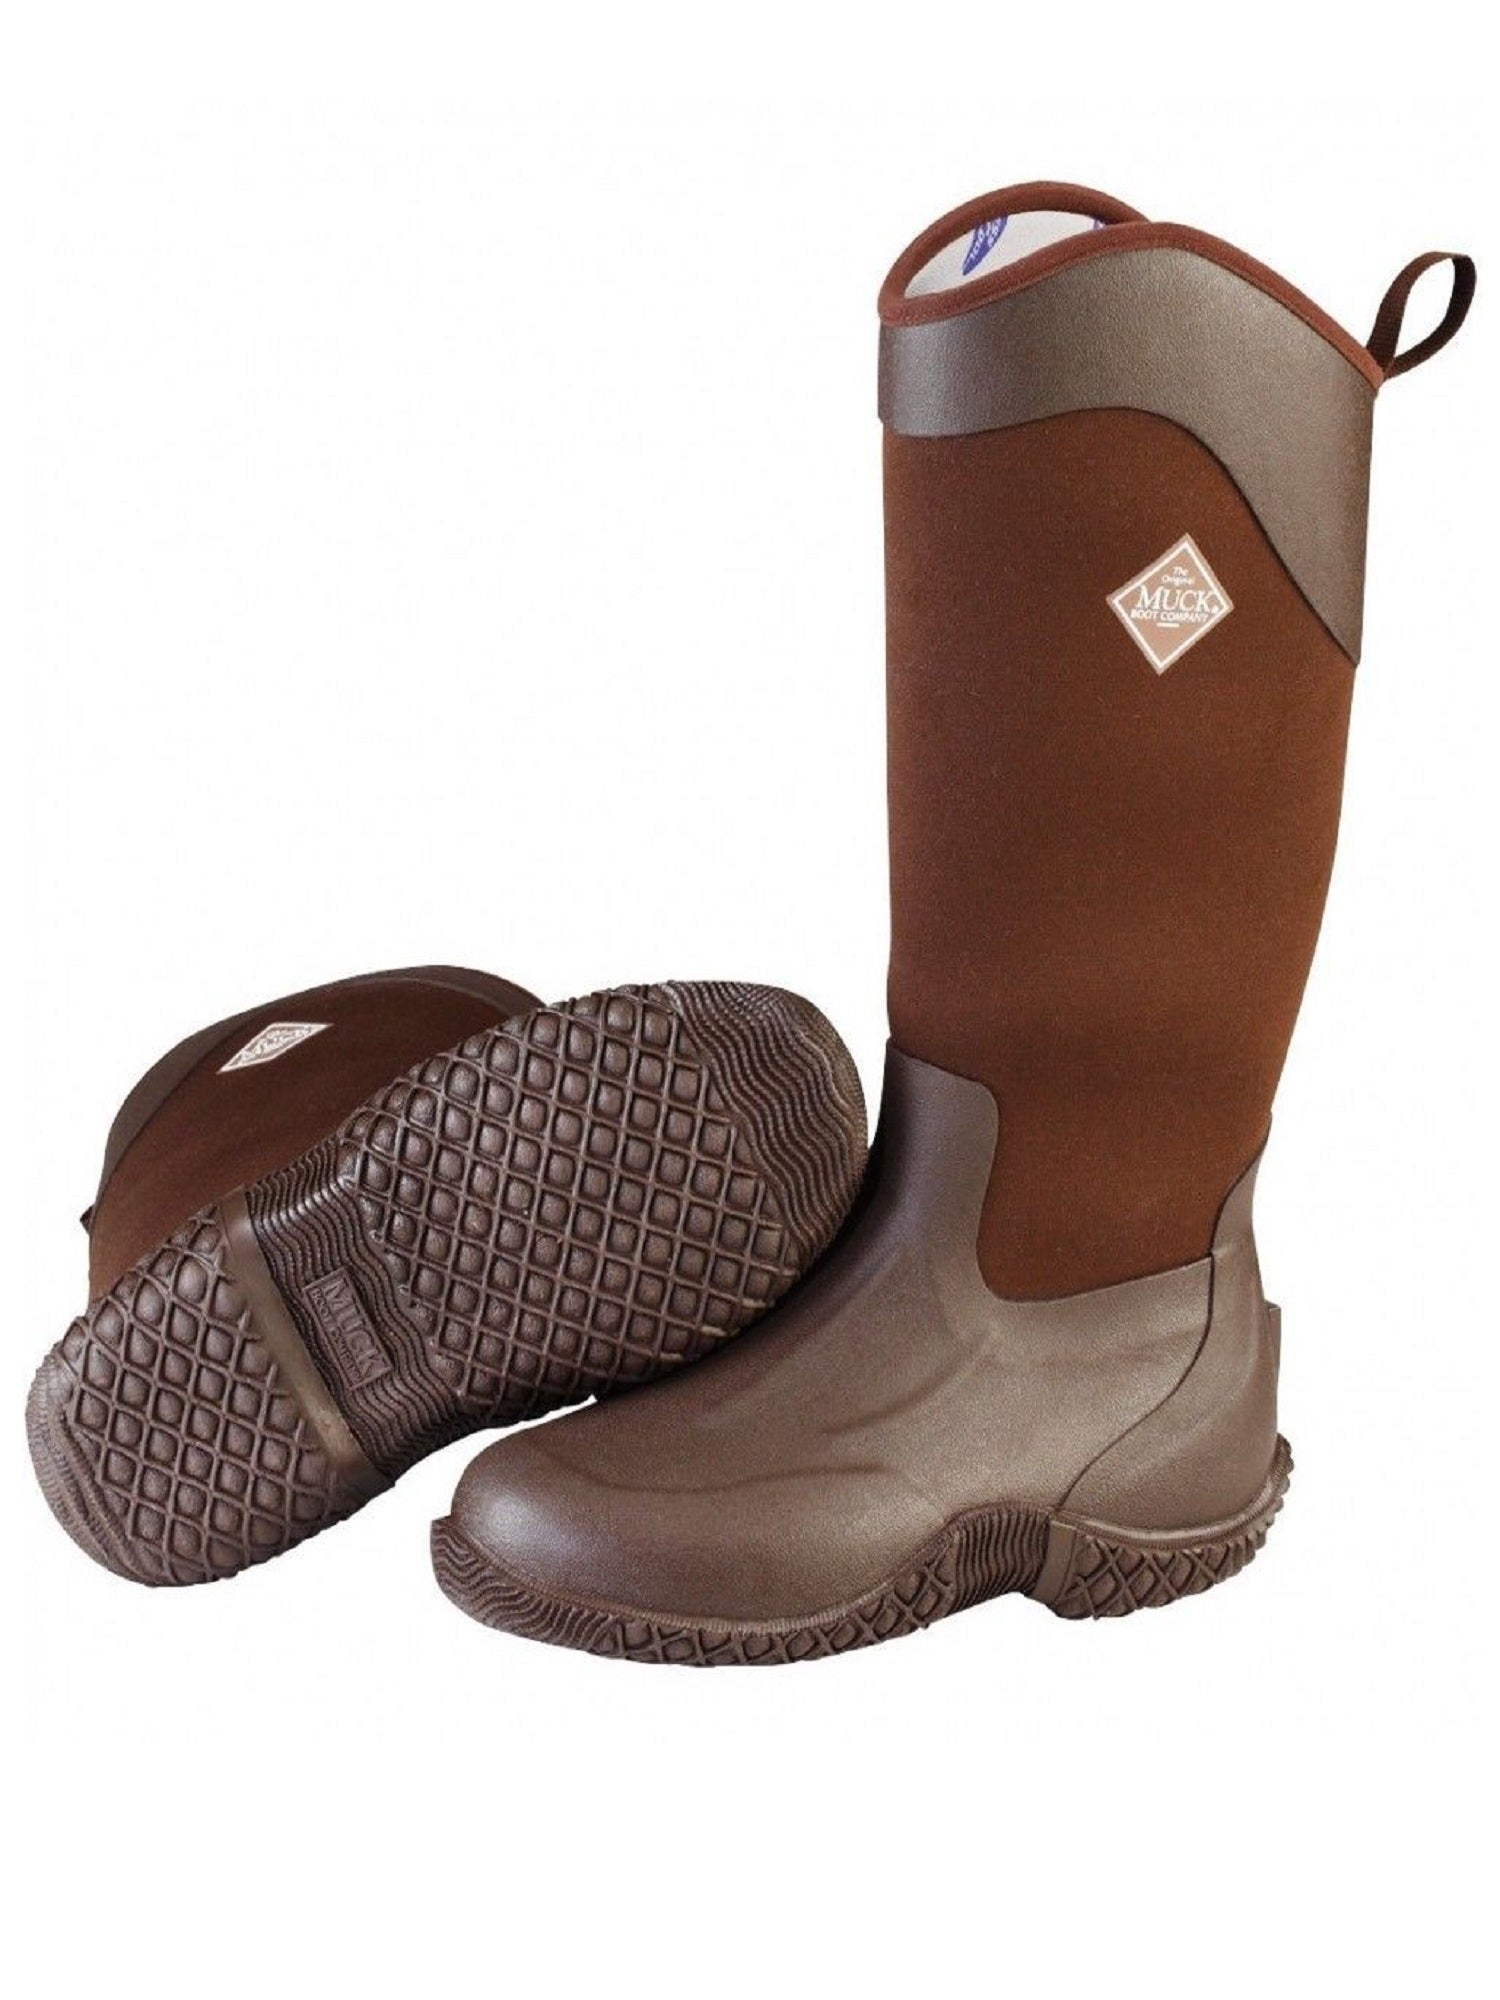 MuckBoots Women's Tack II High All Purpose Brown Boot, Size 8